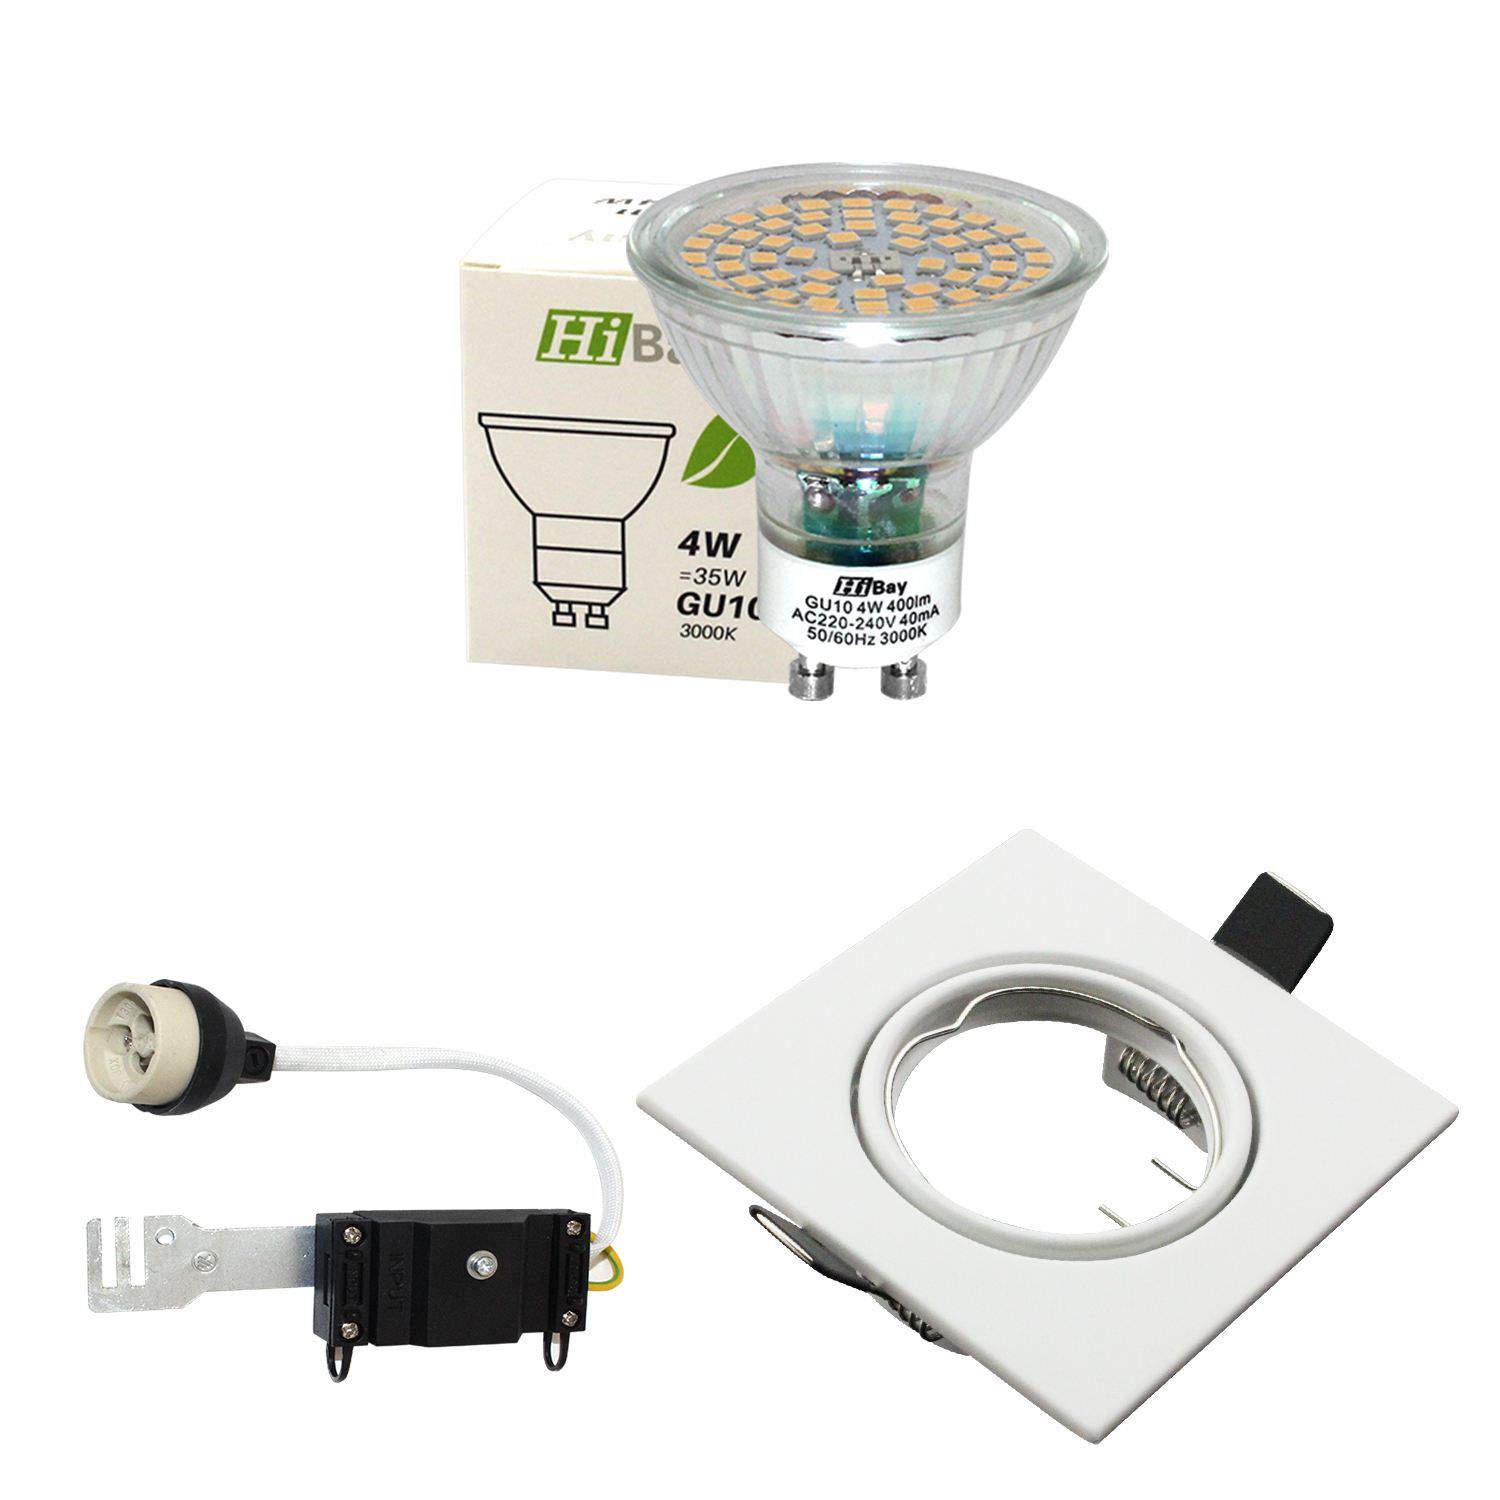 Modern Mains LED GU10 Tilt Downlights Recessed Ceiling ...